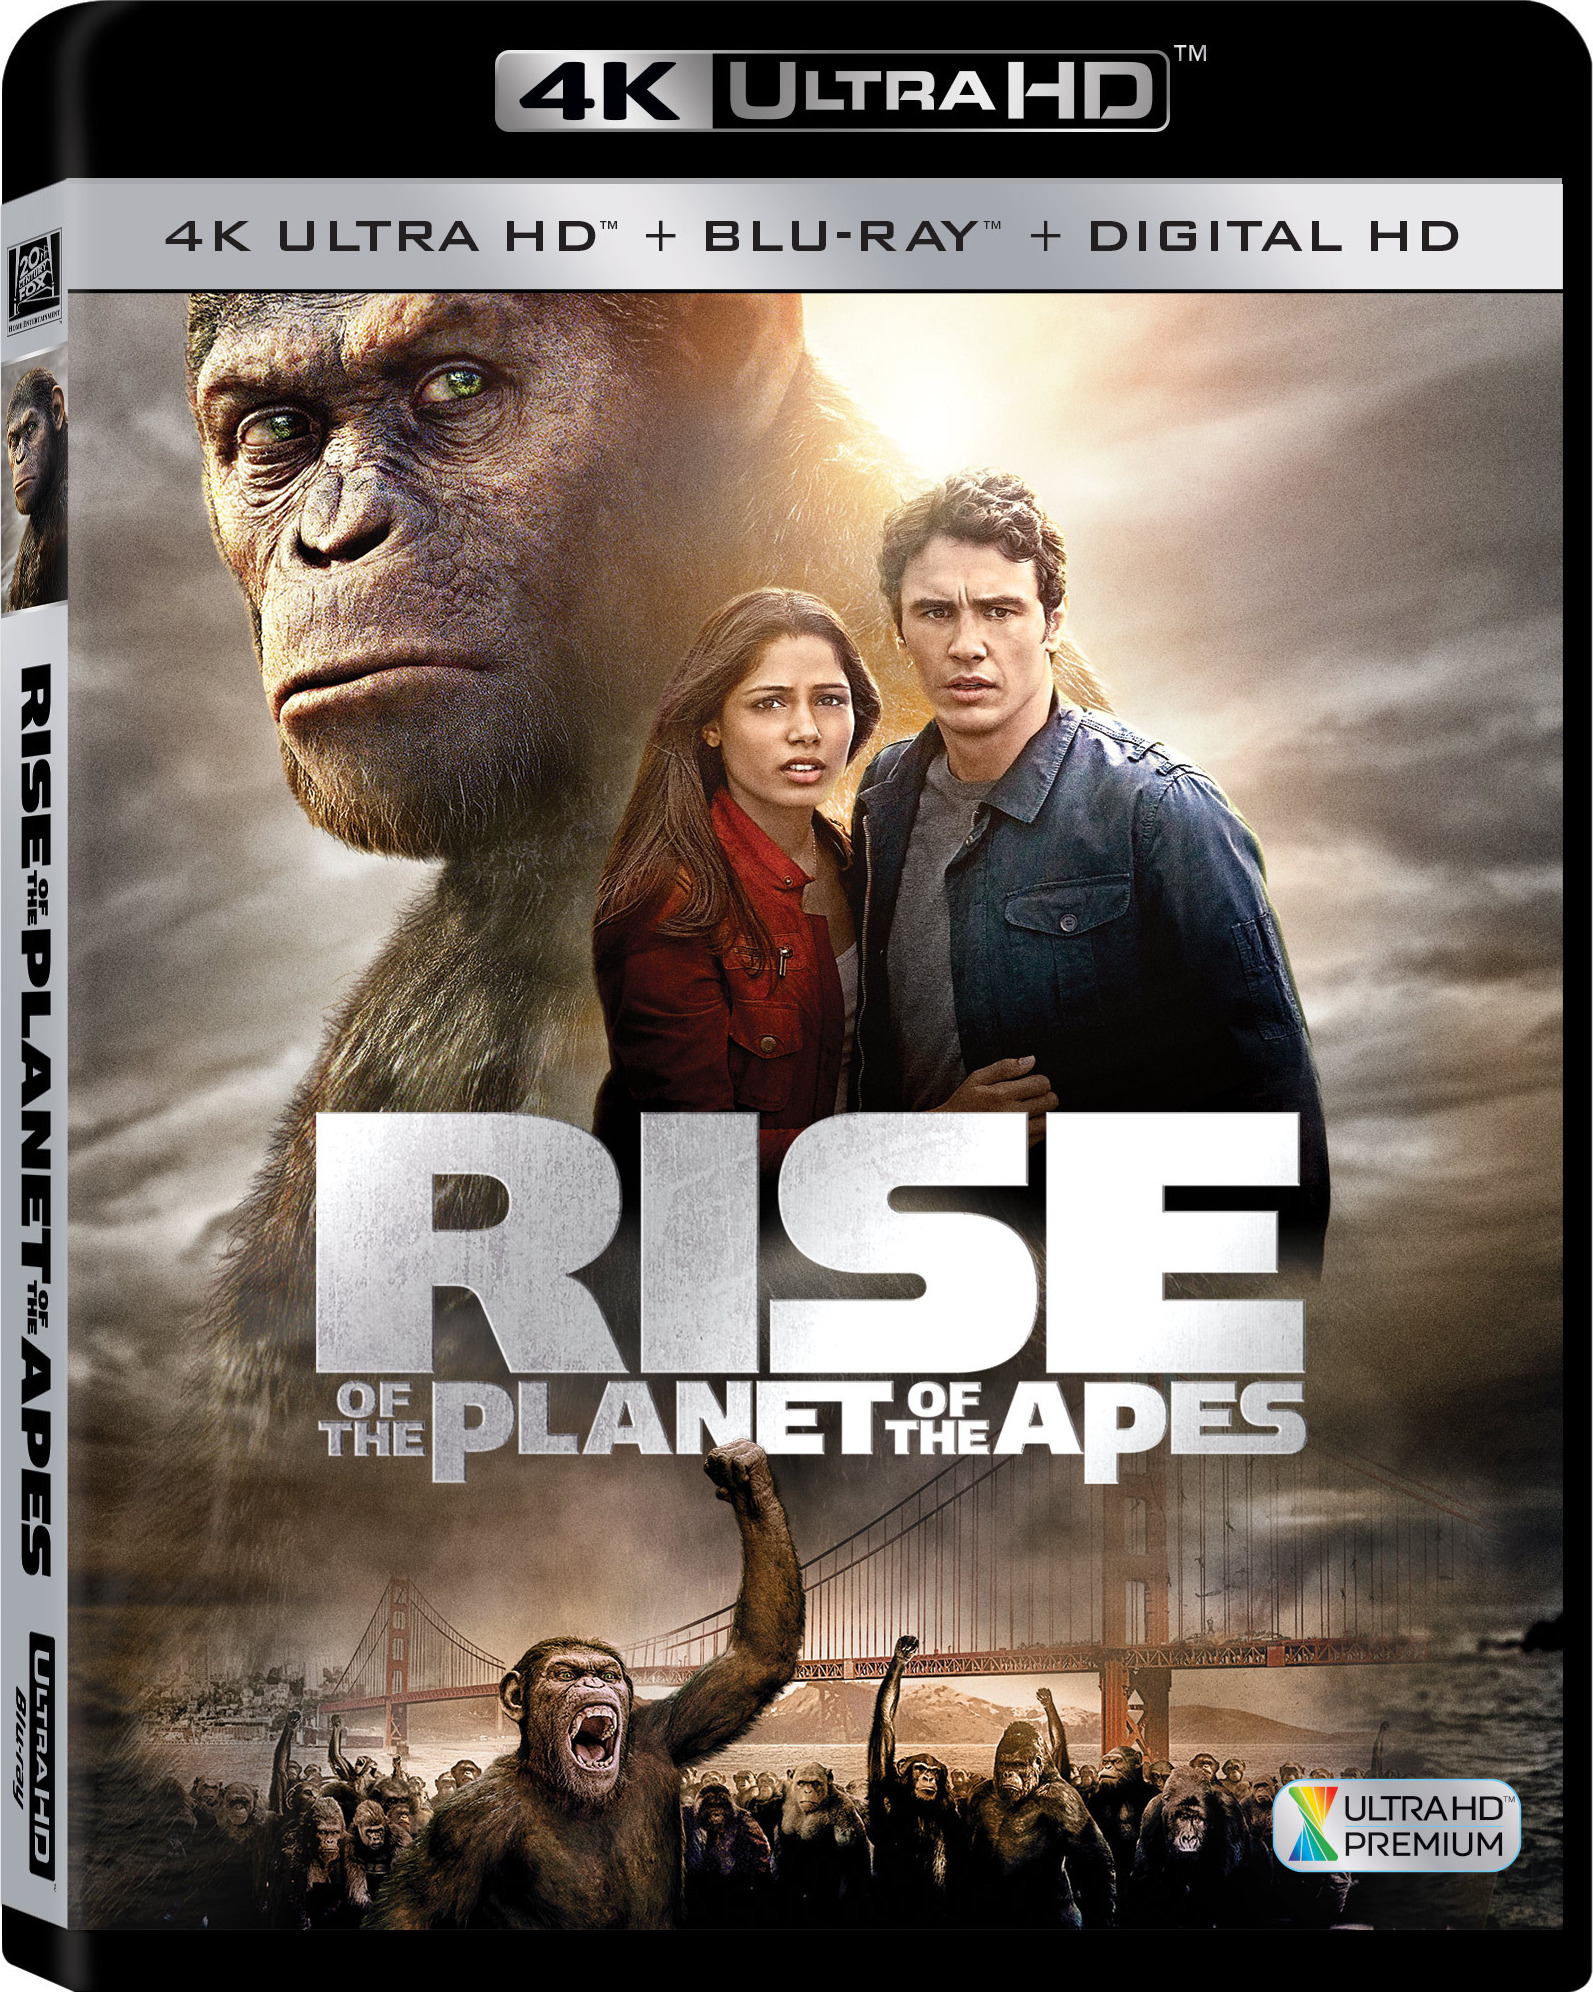 Rise of the Planet of the Apes 4K (2011) UHD Ultra HD Blu-ray